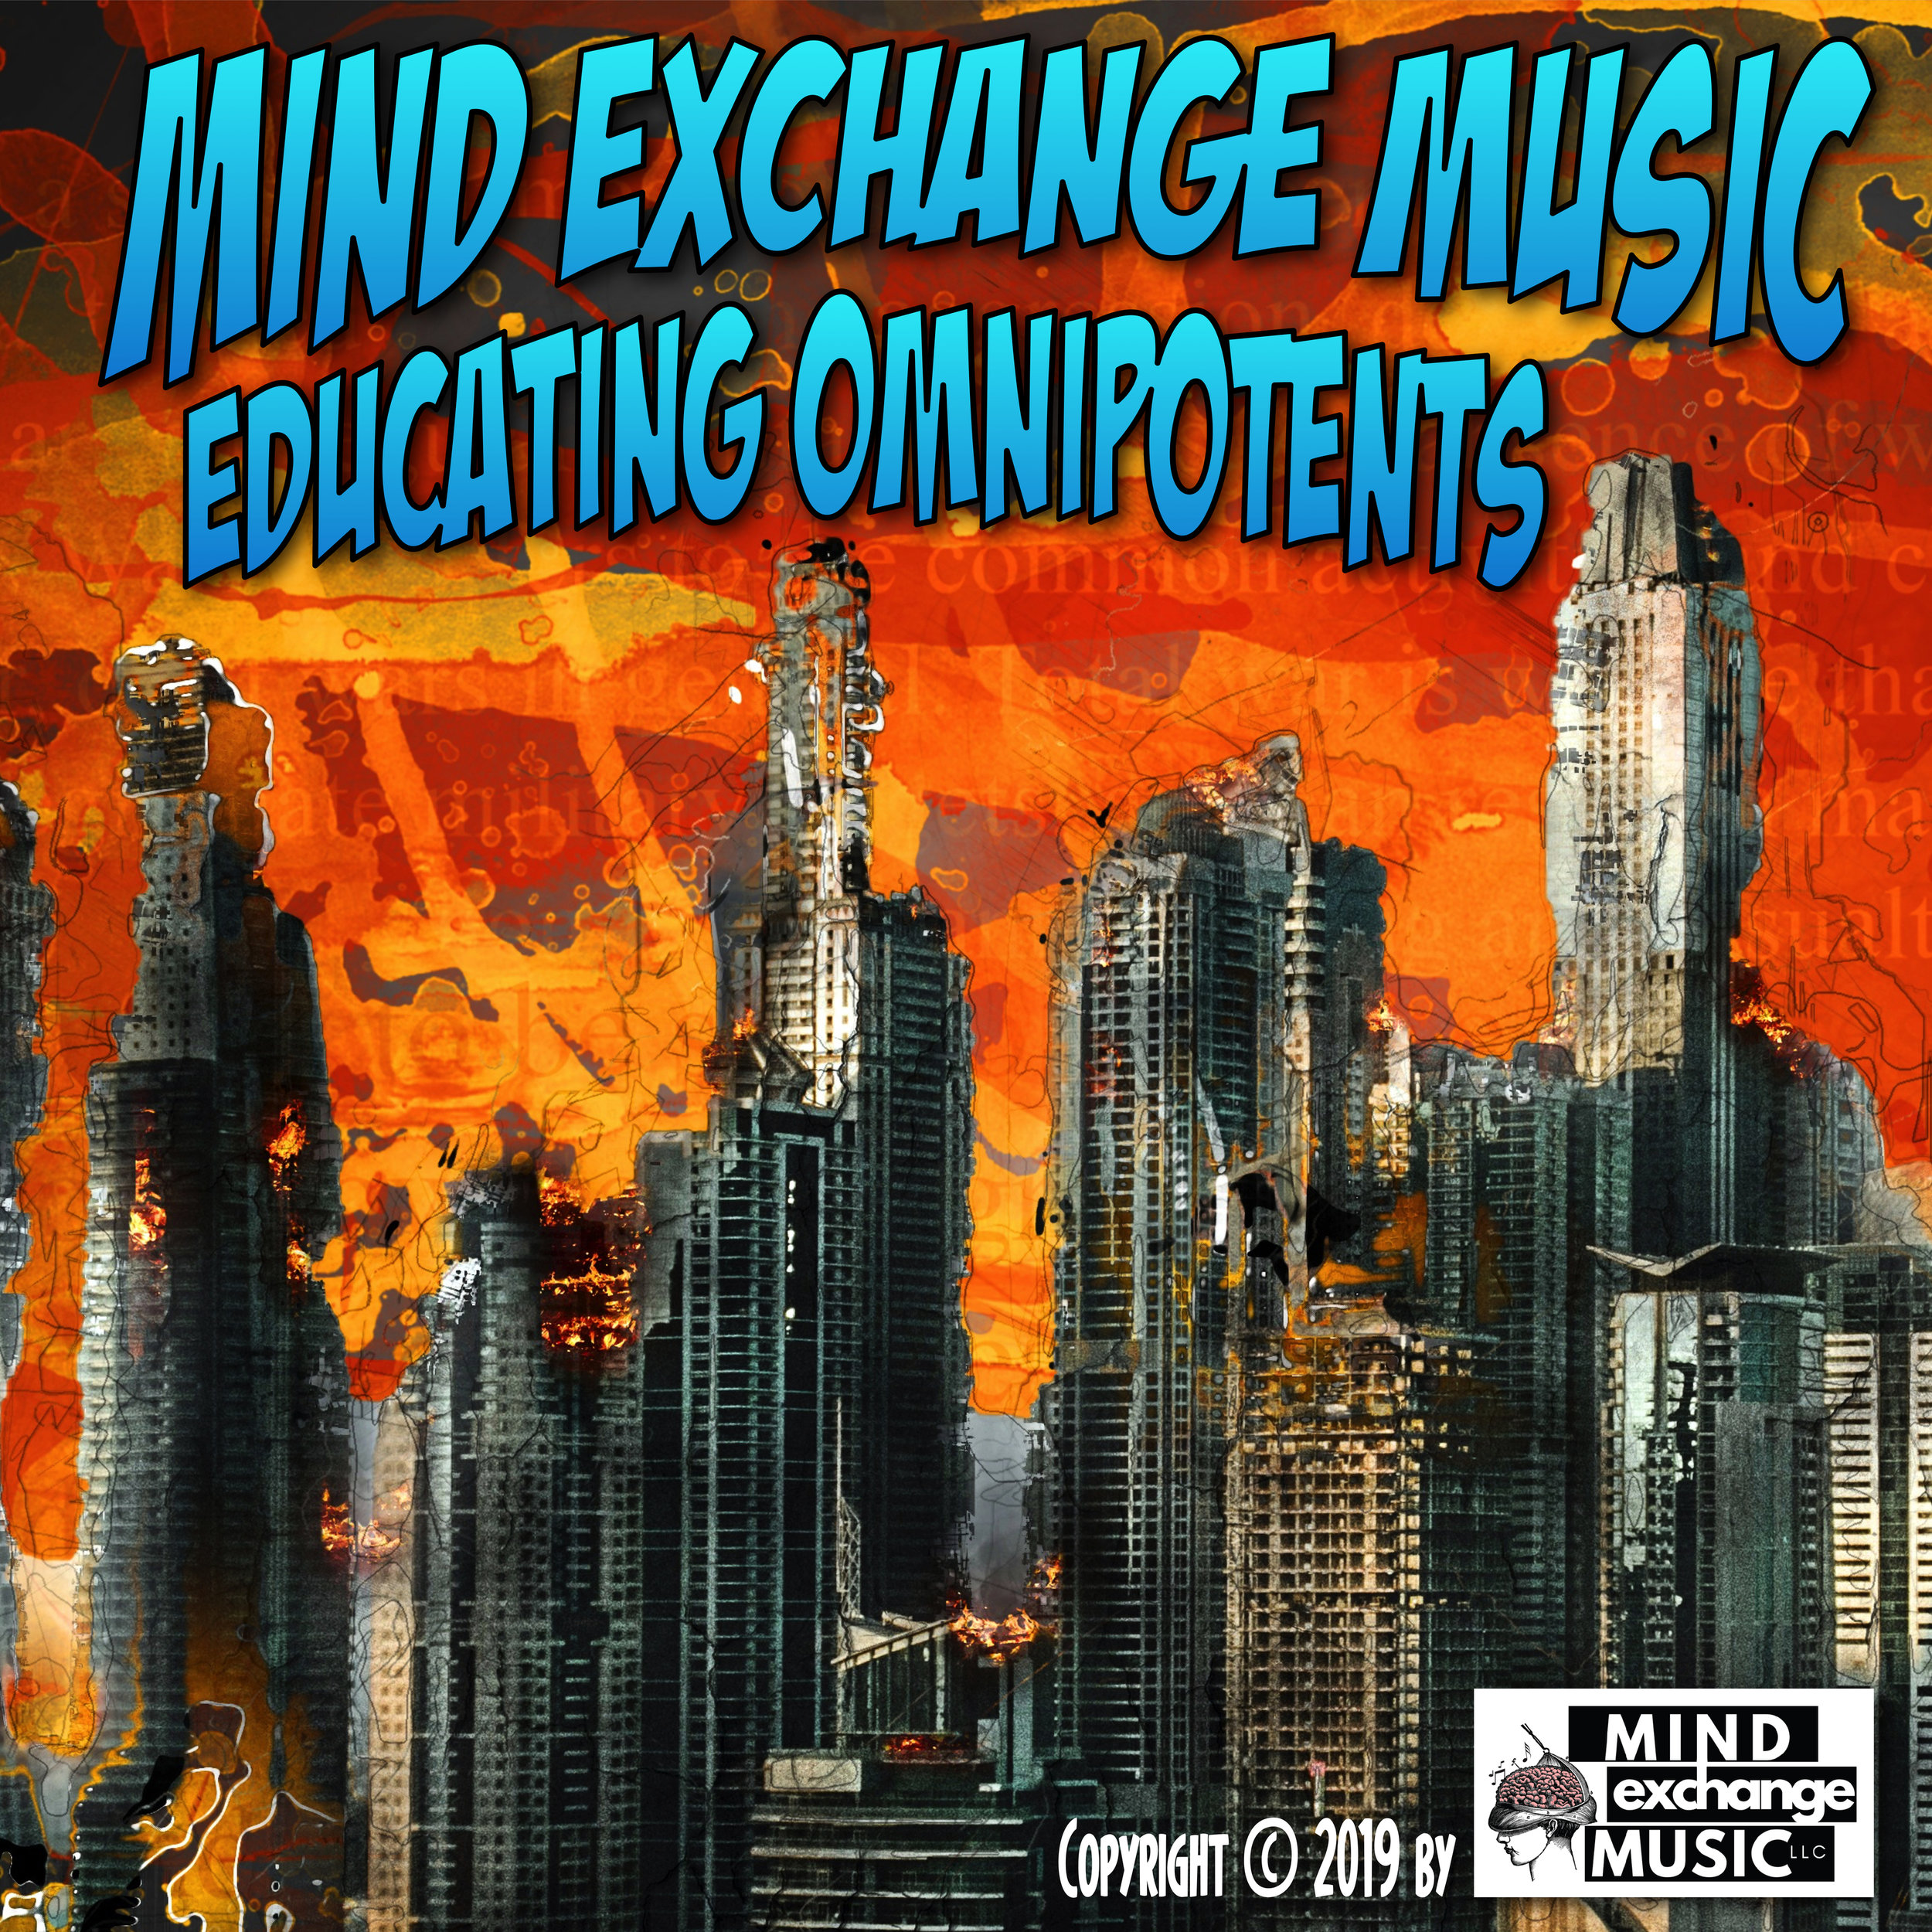 Mind Exchange Music's Soundtrack Educating Omnipotents